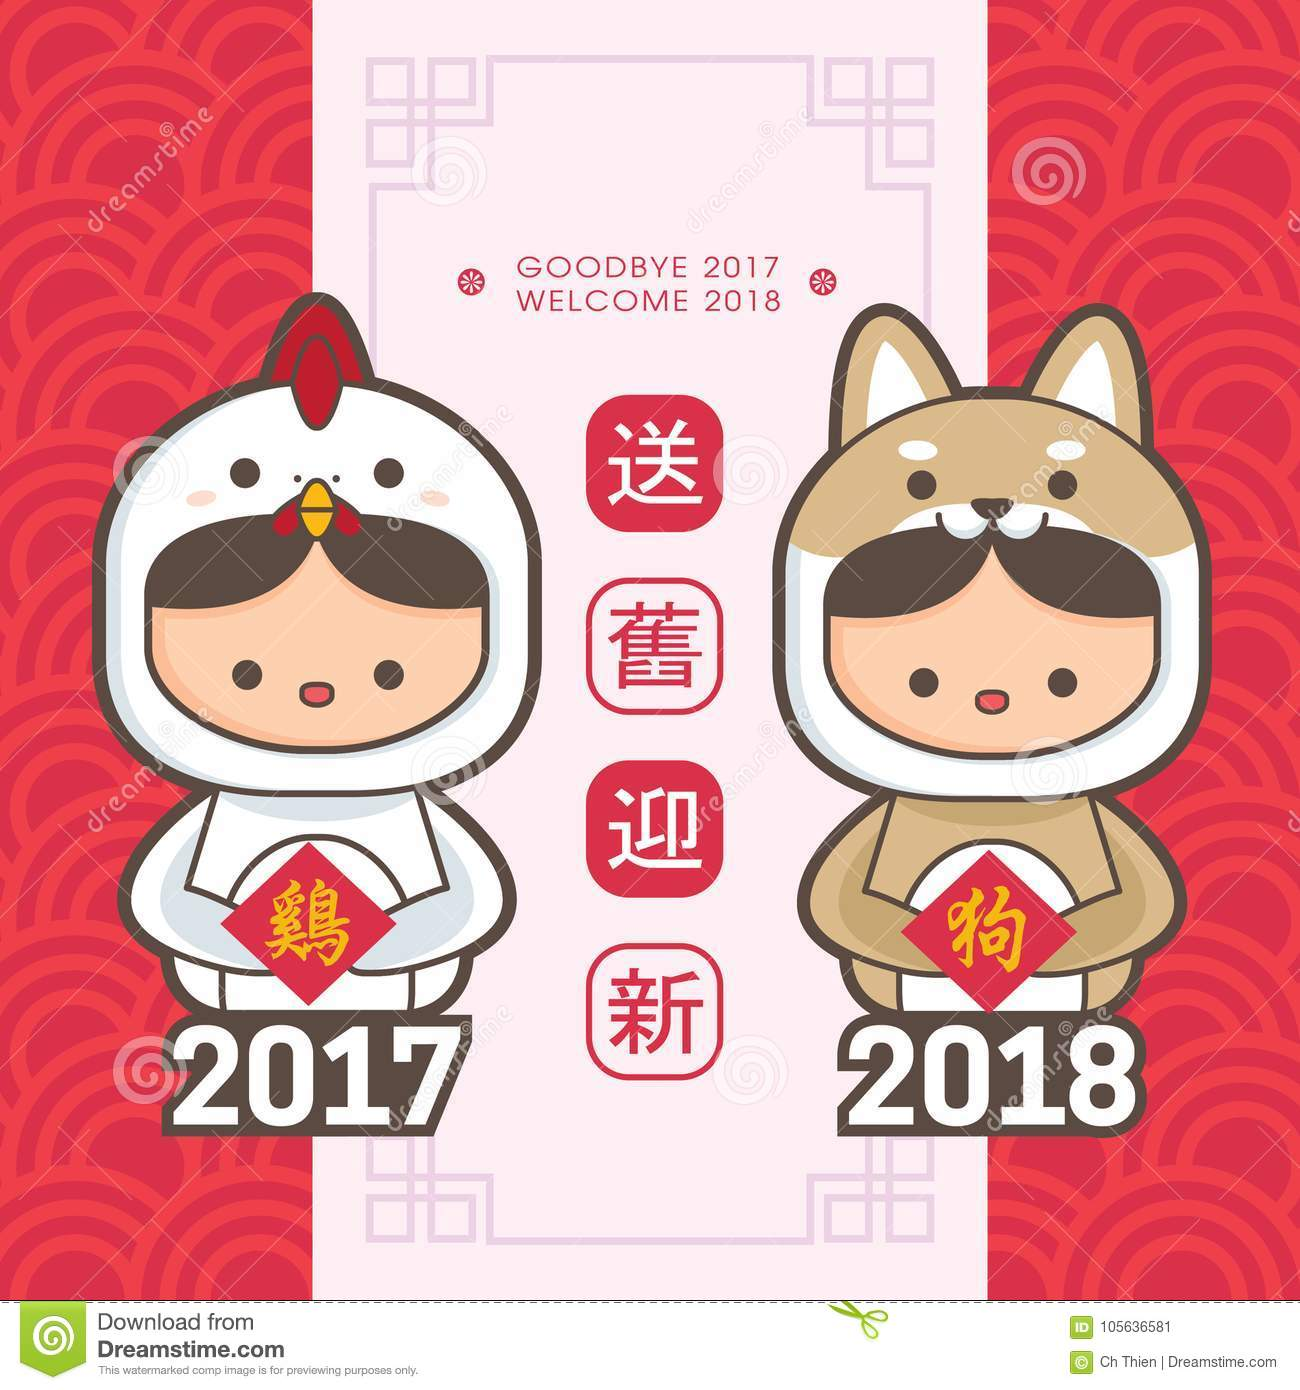 2018 Chinese New Year Greeting Card Template Cute Boy And Girl